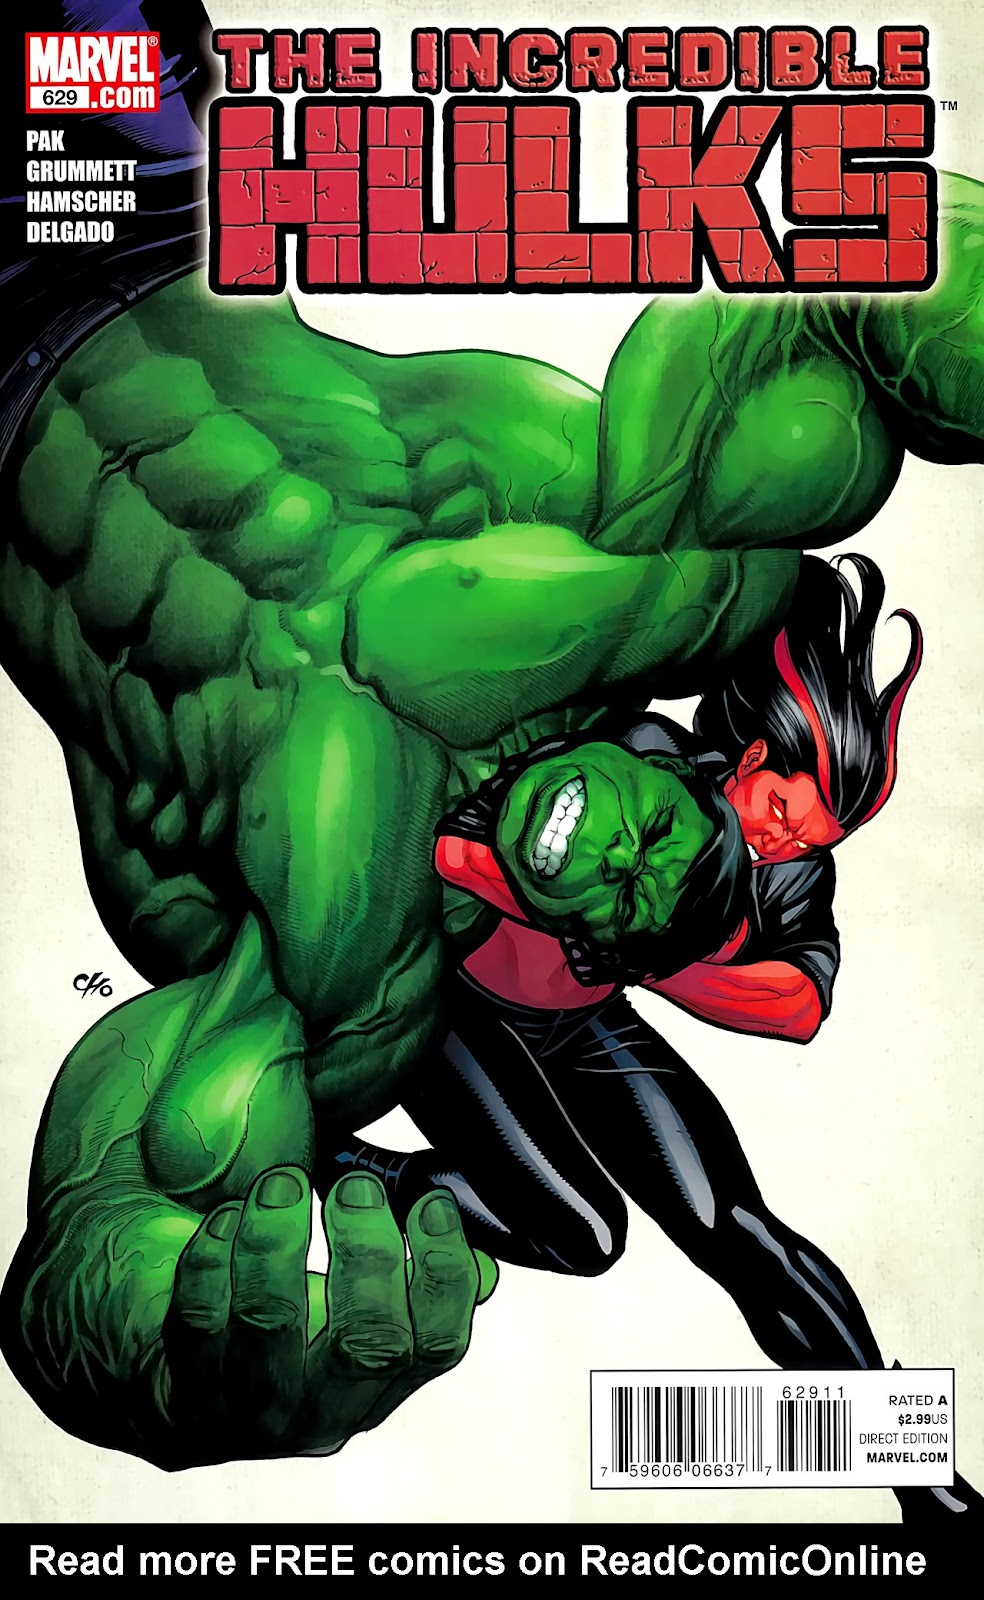 Incredible Hulks (2010) Issue #629 #19 - English 1